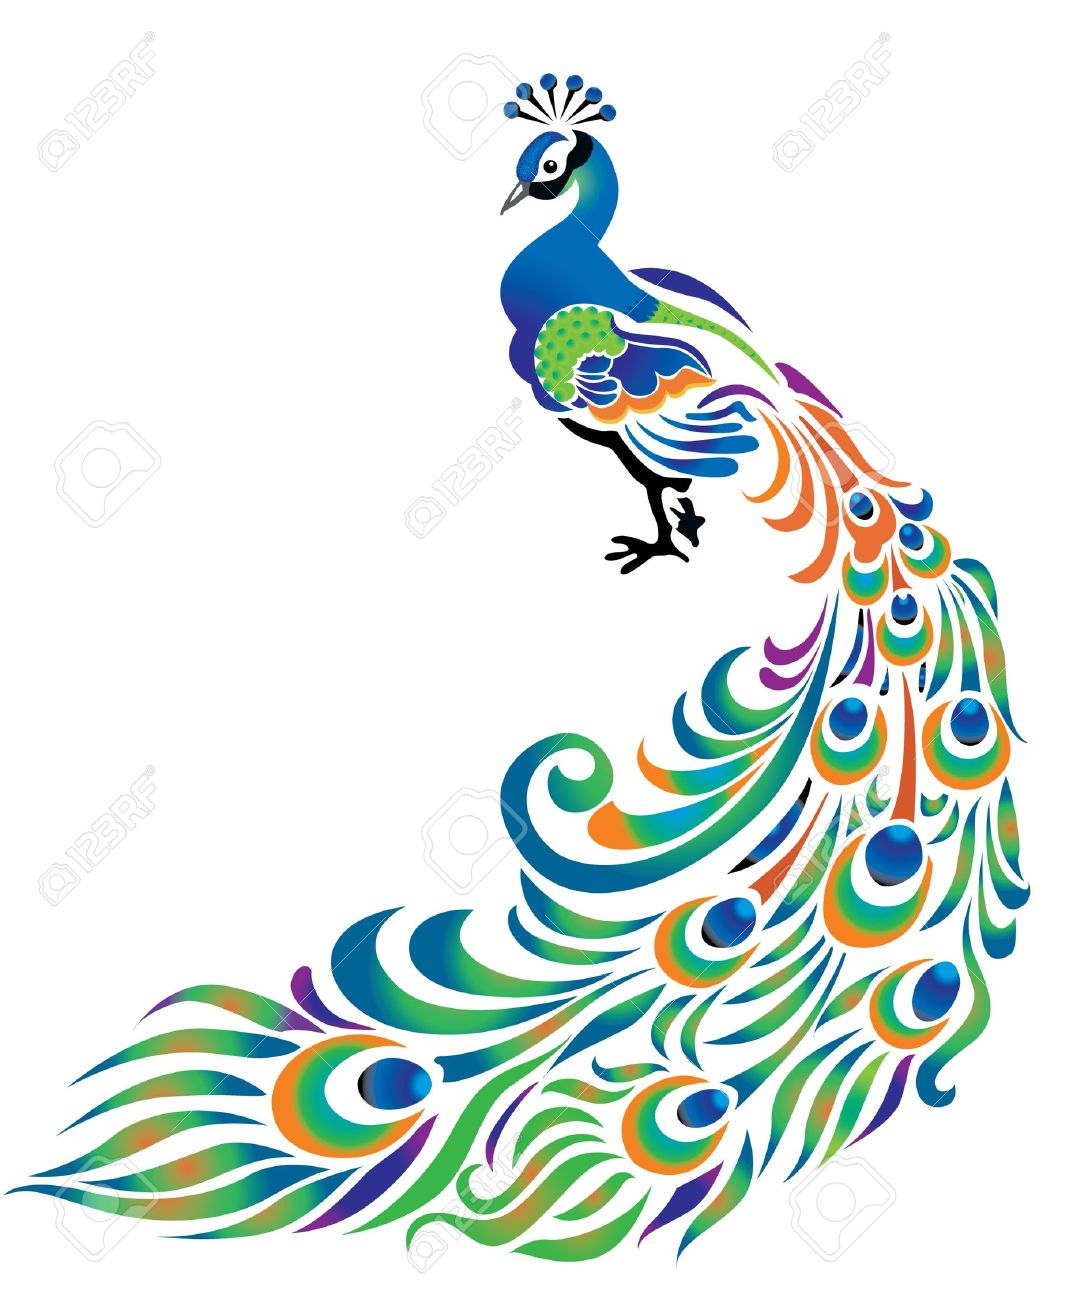 8 980 peacock stock illustrations cliparts and royalty free